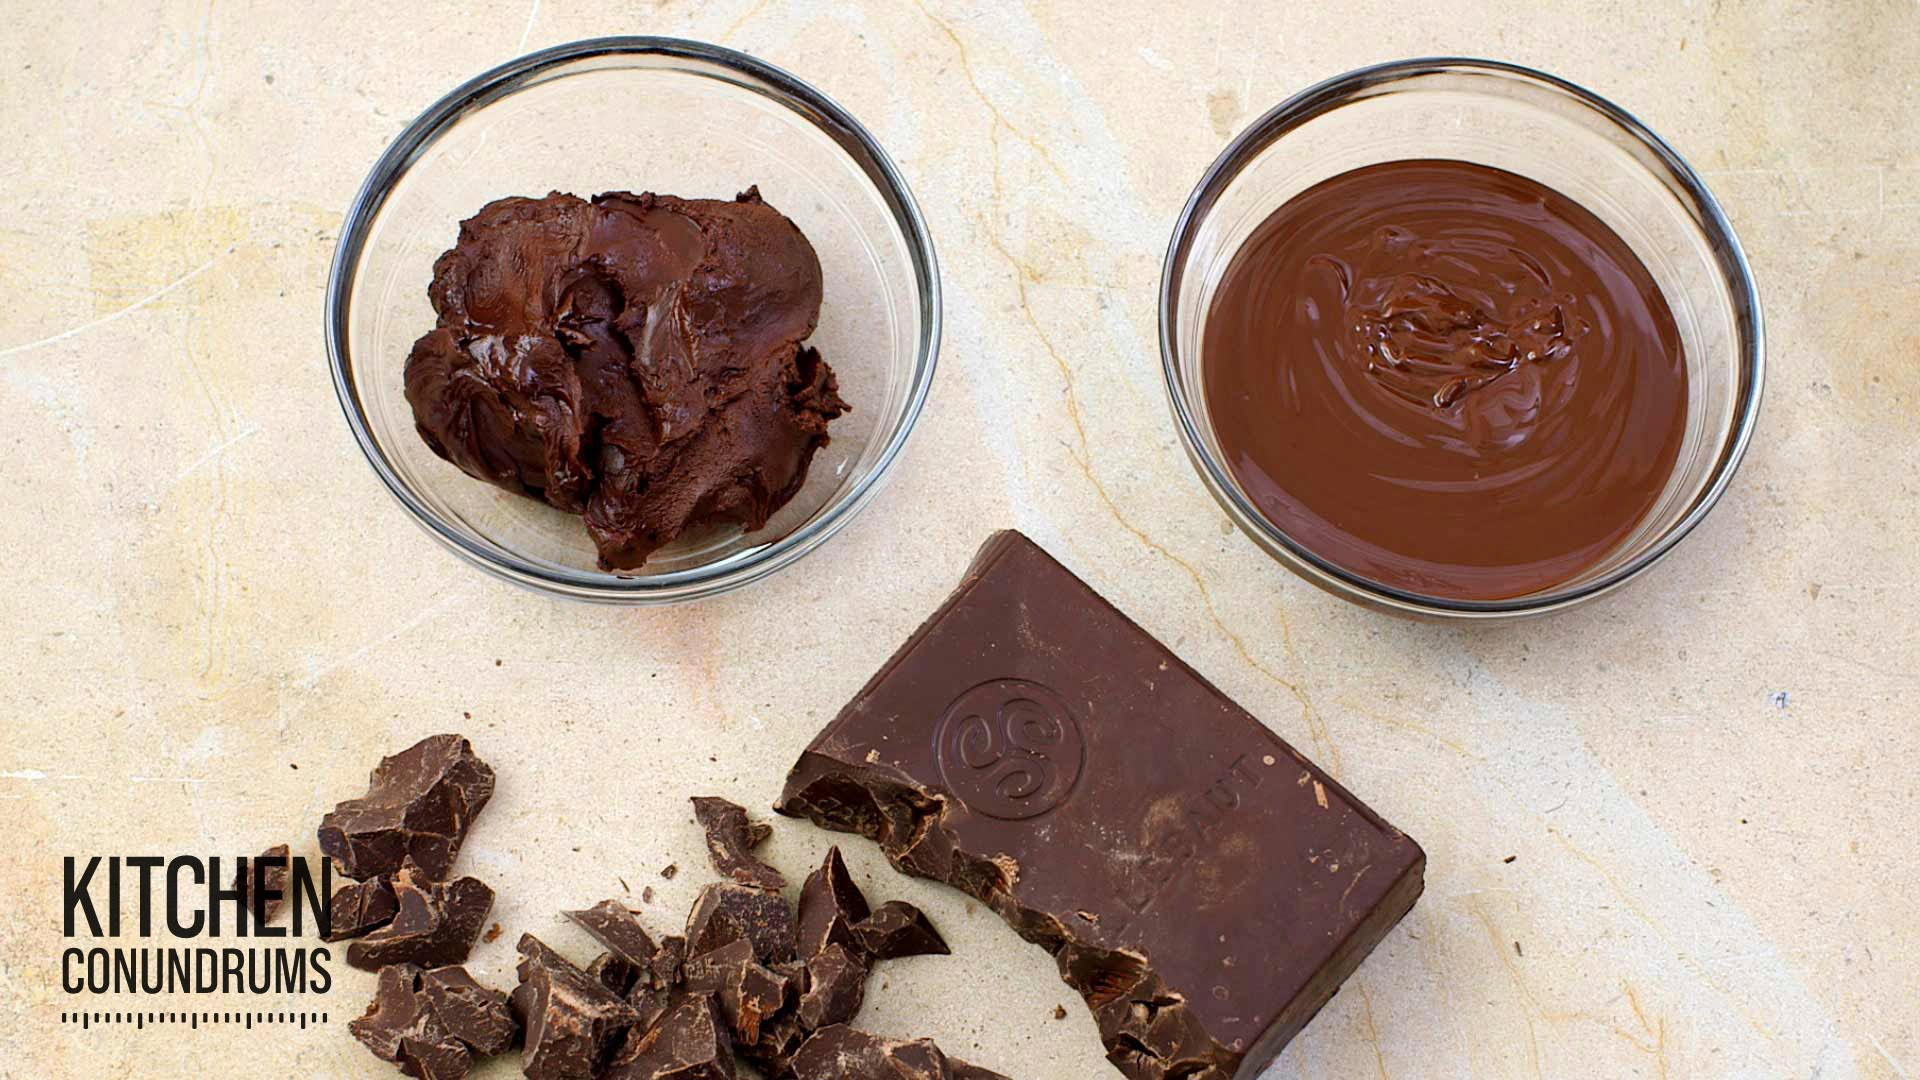 How To Melt Chocolate The Right Way Kitchen Conundrums With Thomas Joseph Best Chocolate Shop